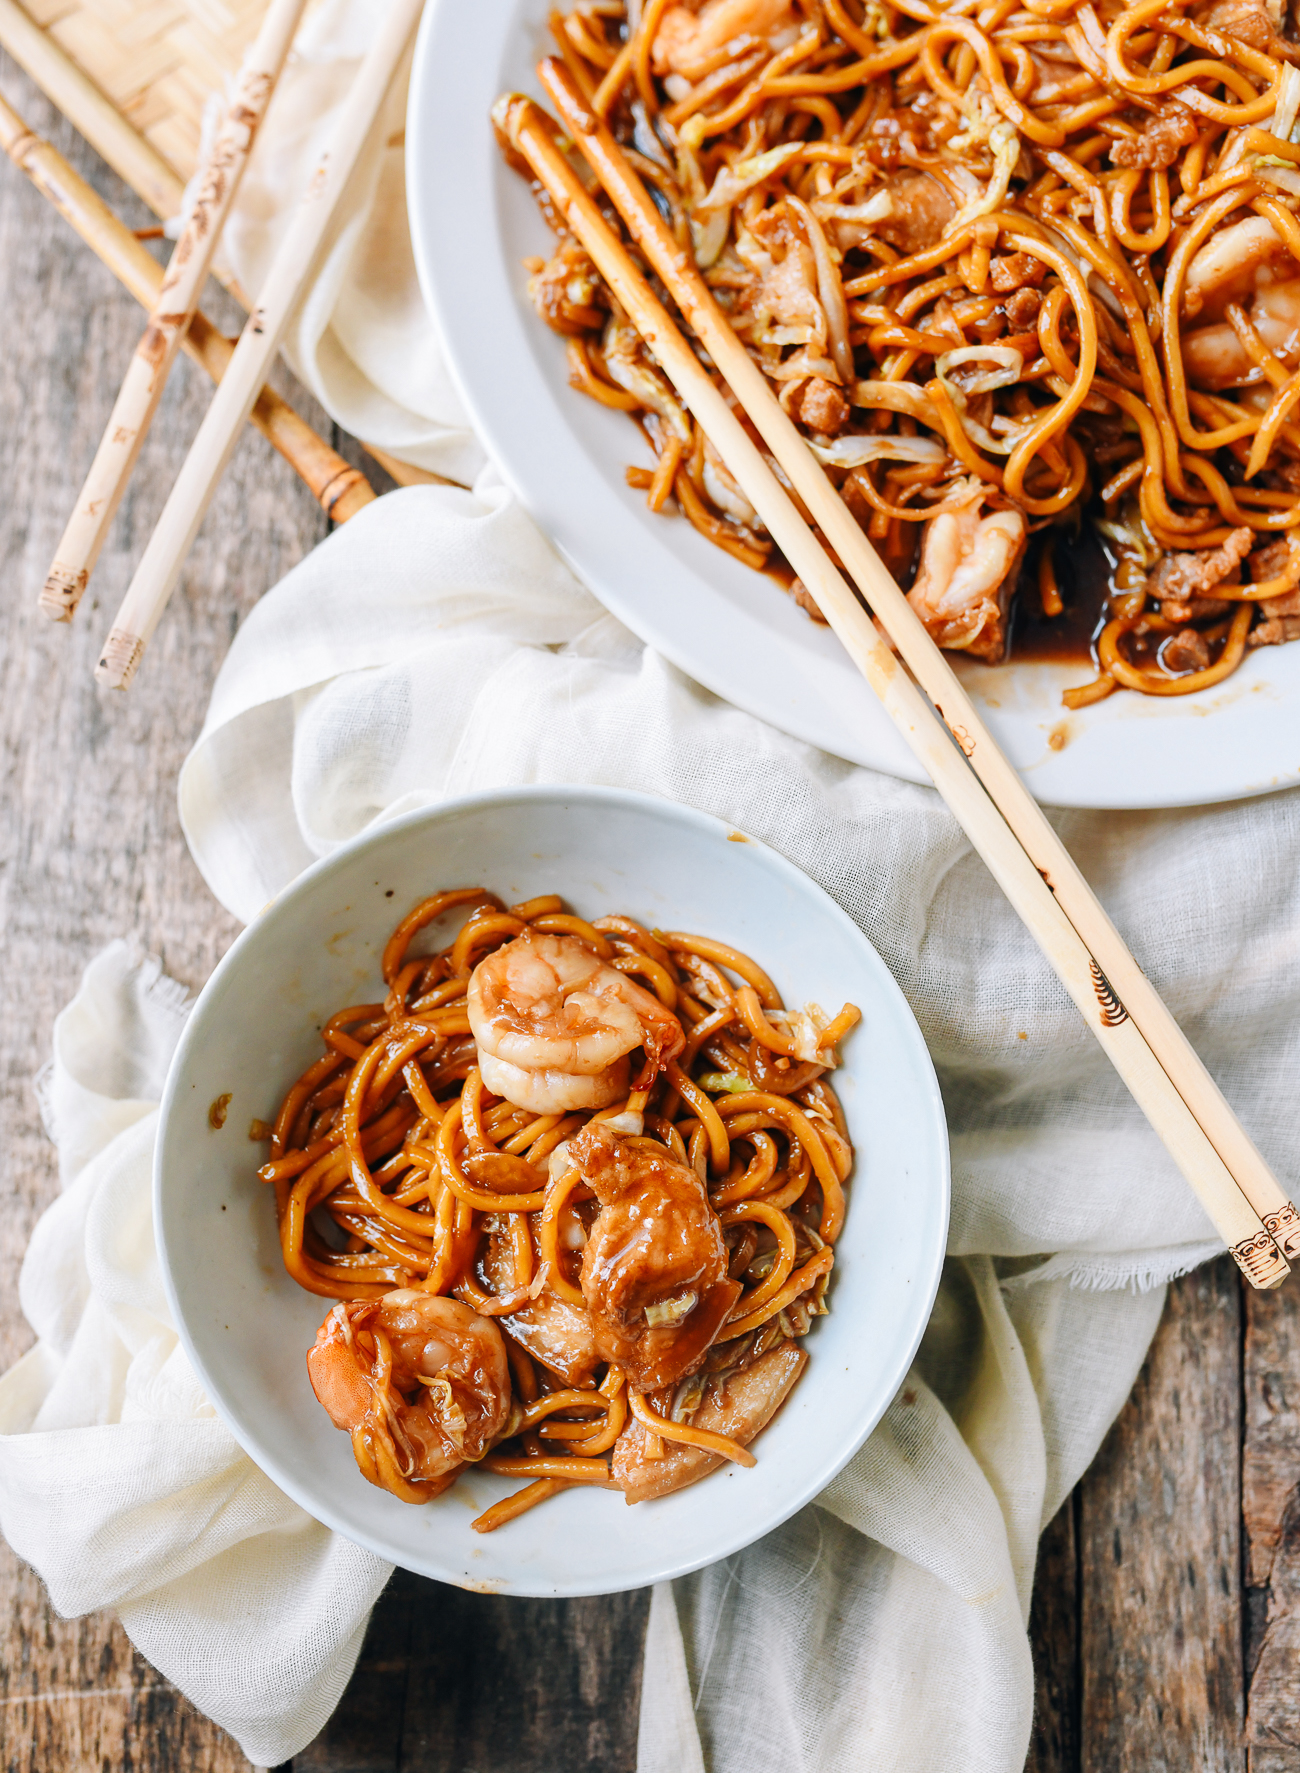 Malaysian Hokkien Mee with Sweet Soy Sauce